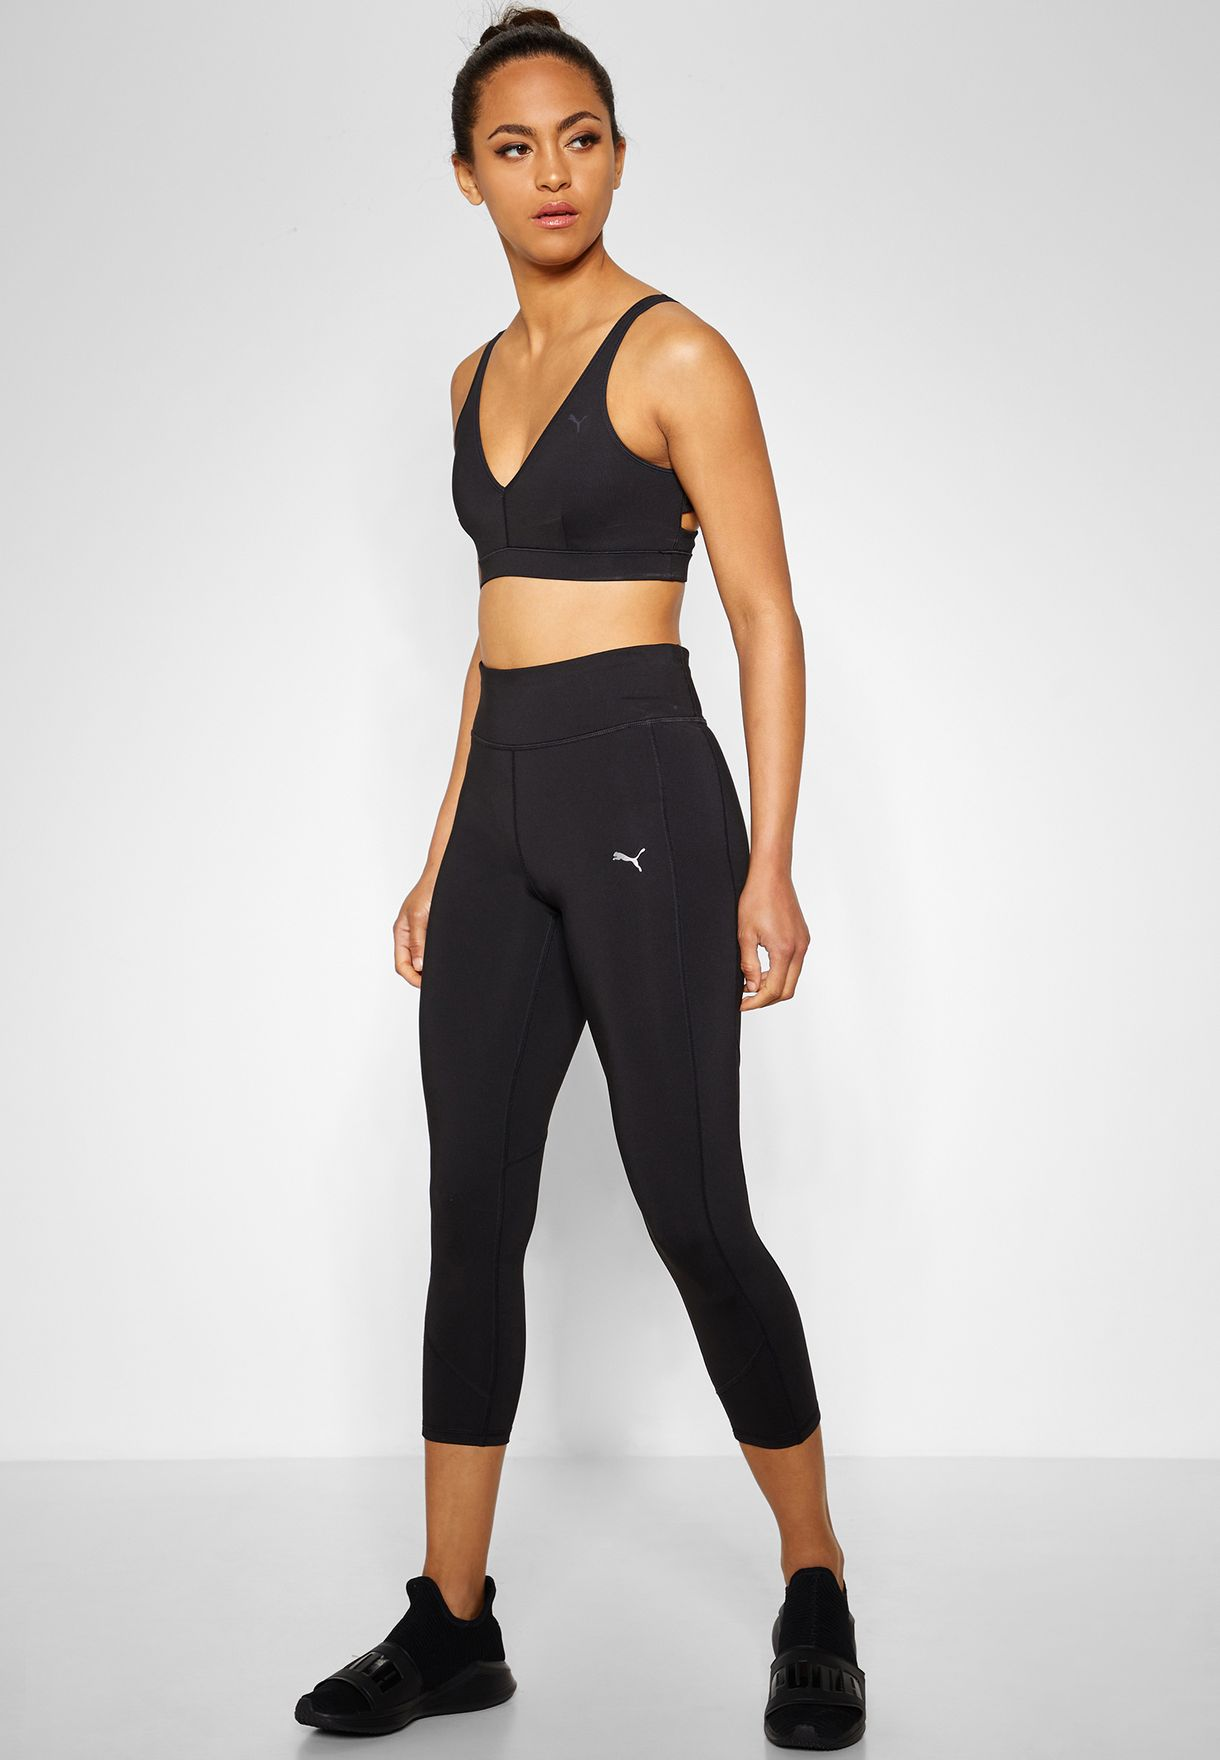 billigt till salu innovativ design lägsta pris Buy Puma Black Always On Solid 3/4 Leggings for Women in Mena ...